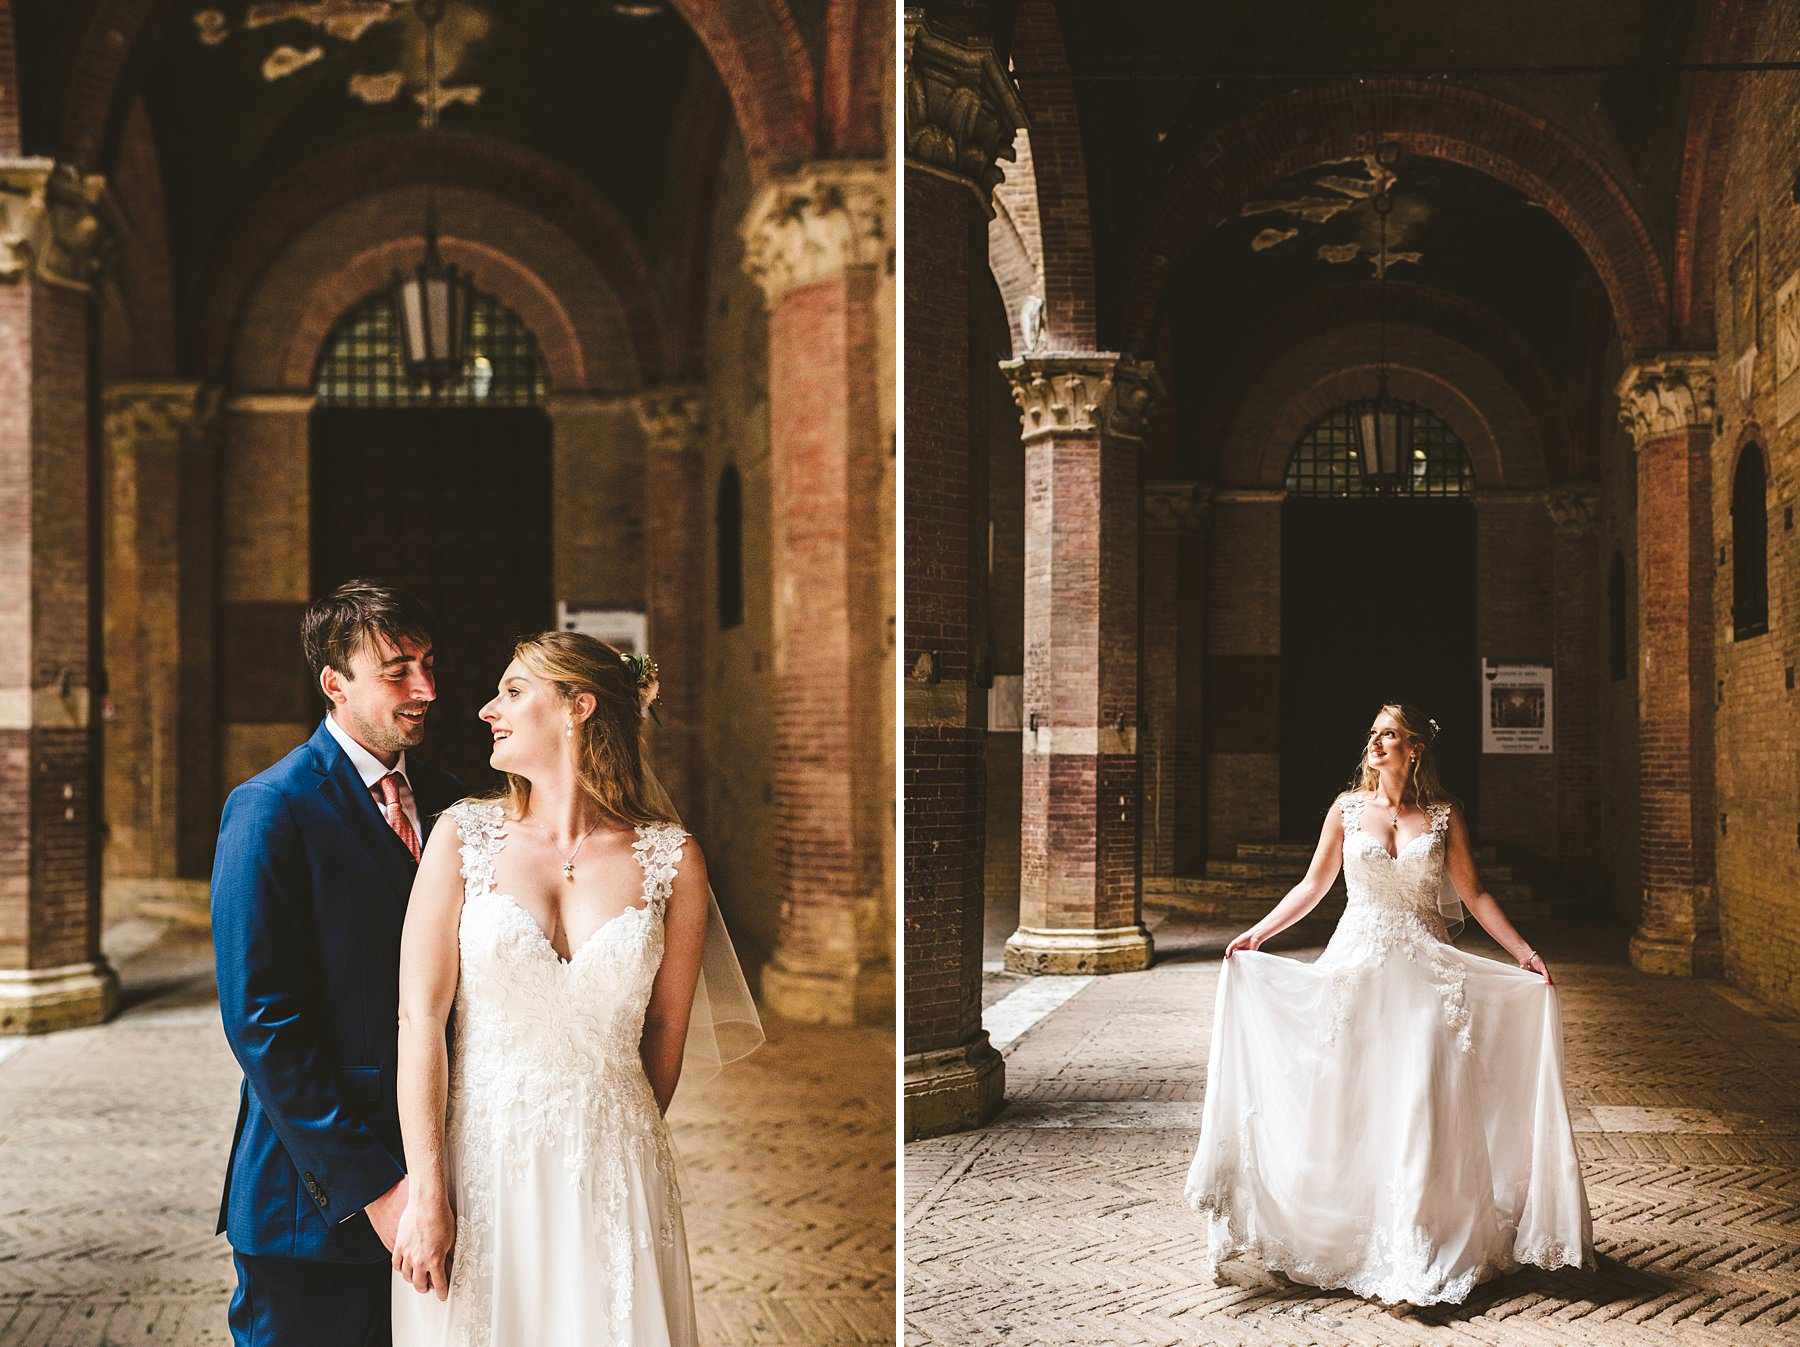 Lovely bride and groom elopement wedding portrait at Siena Town Hall